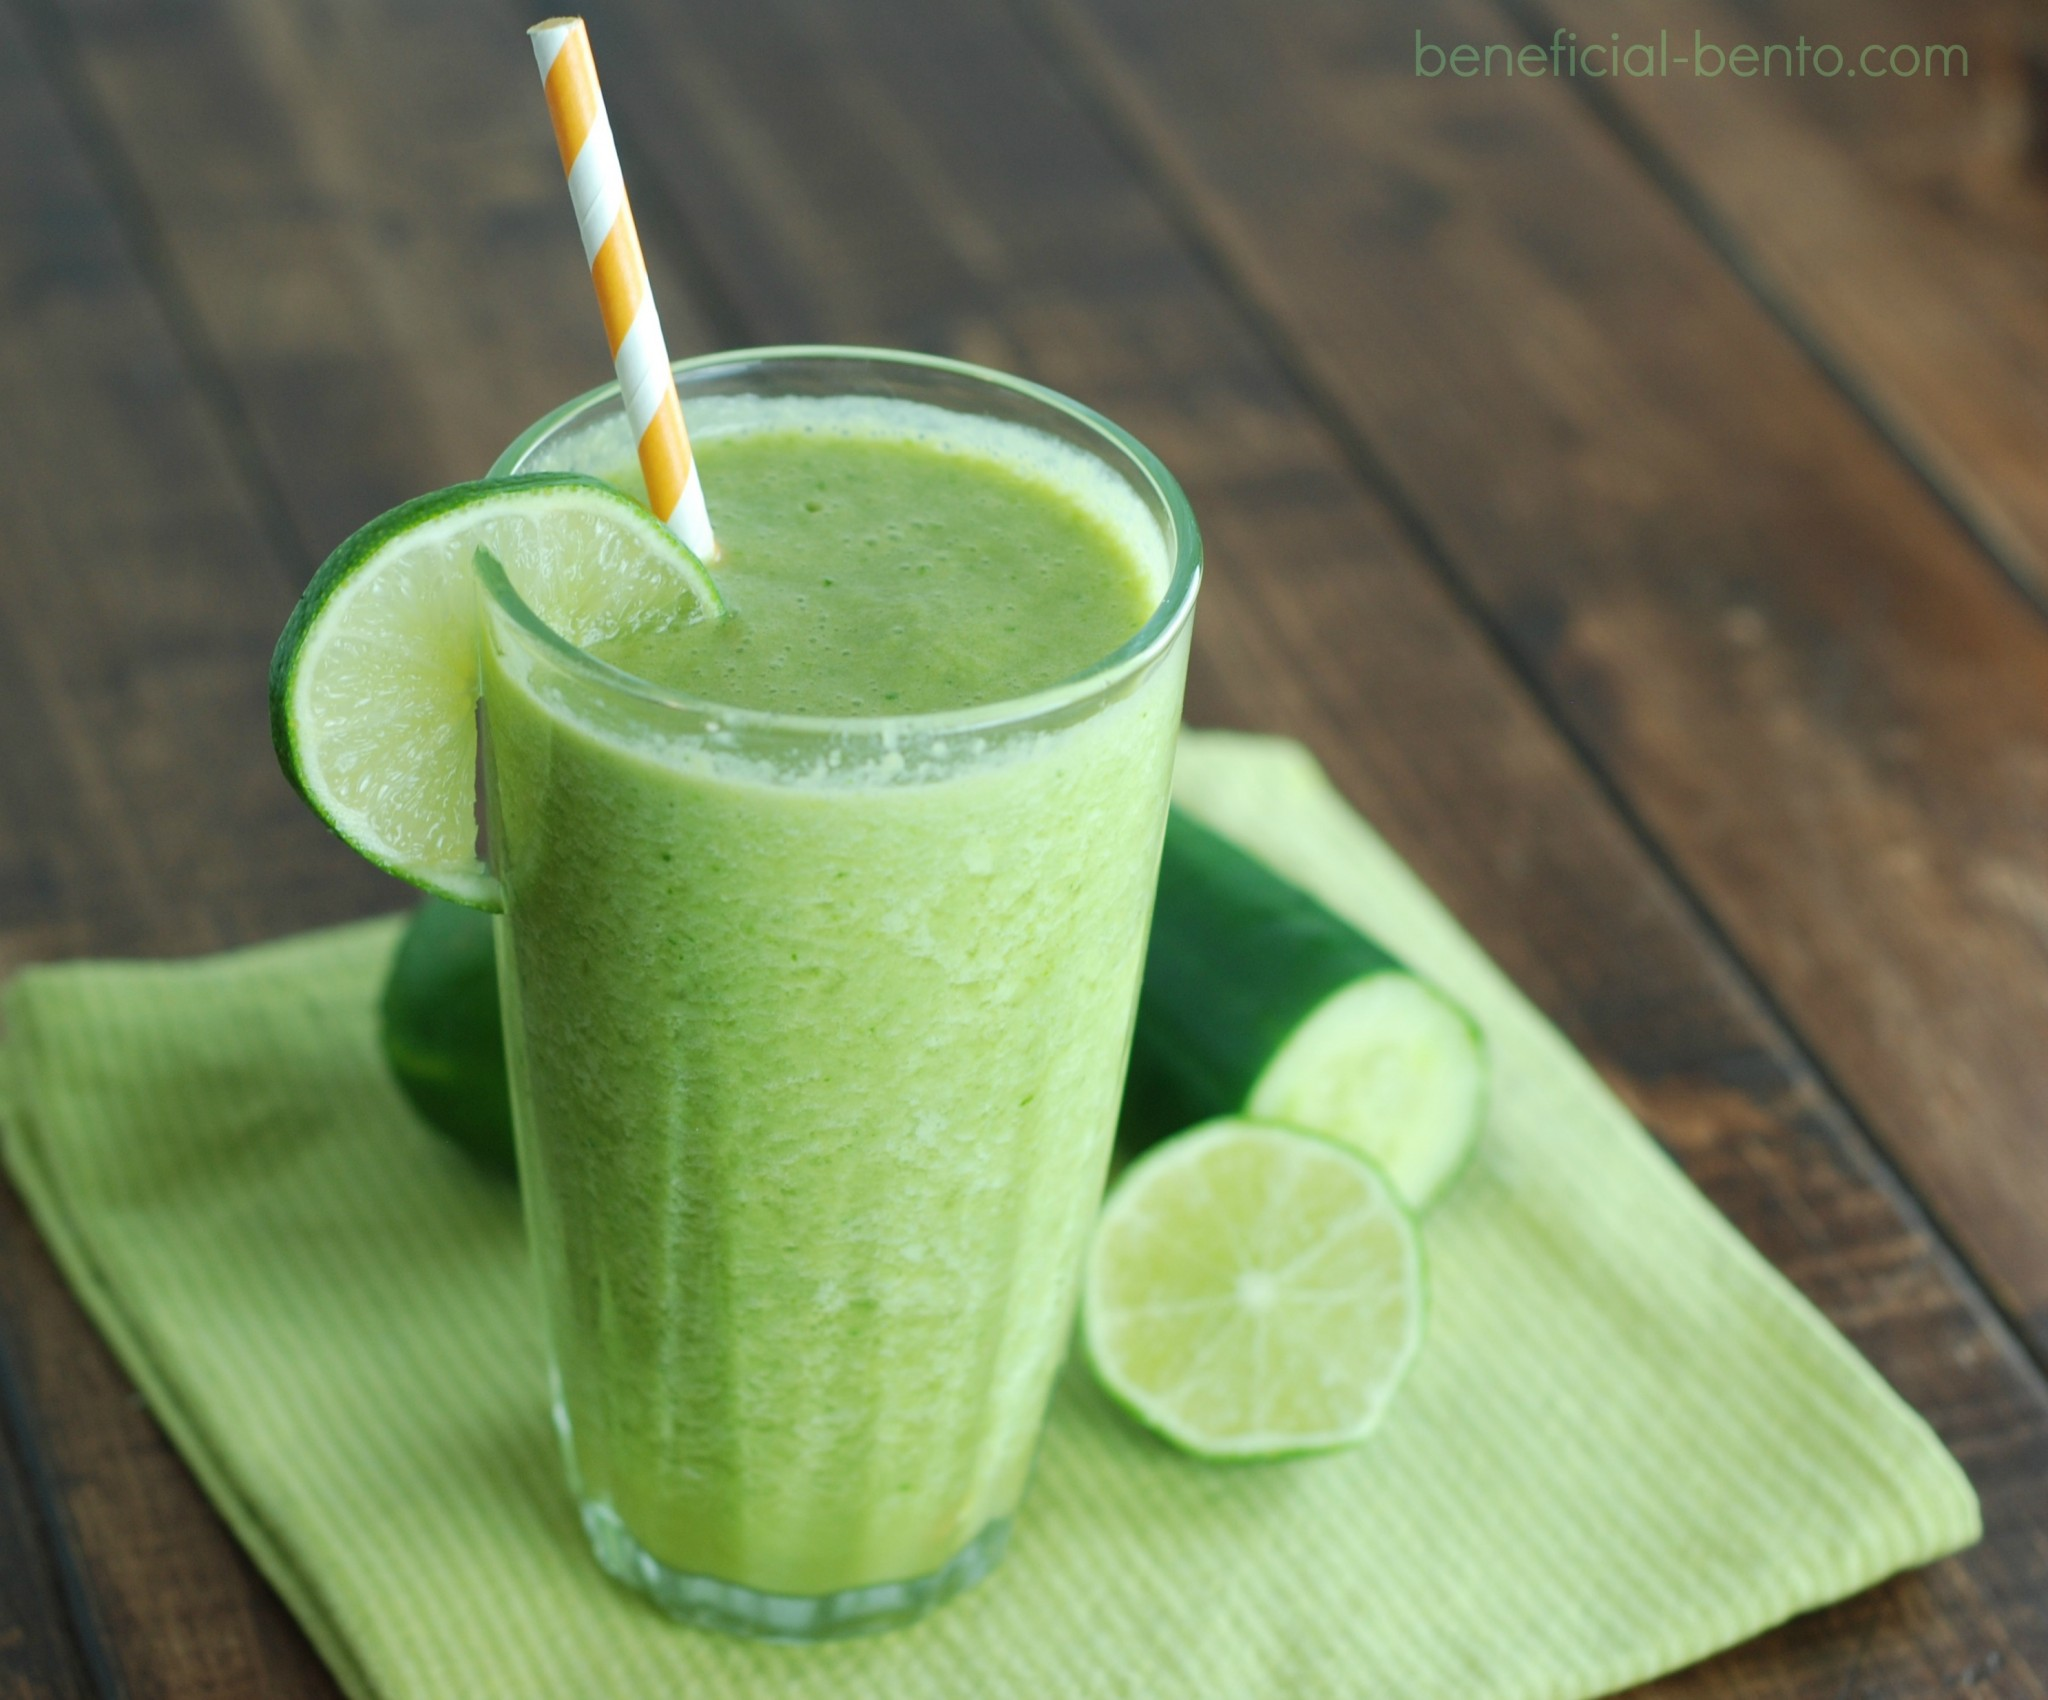 this smoothie is so packed with nutrients! The green veggie taste is tamed with coconut milk, lime, and pineapple. It's so sweet, and gives you a huge burst of energy when you drink it!